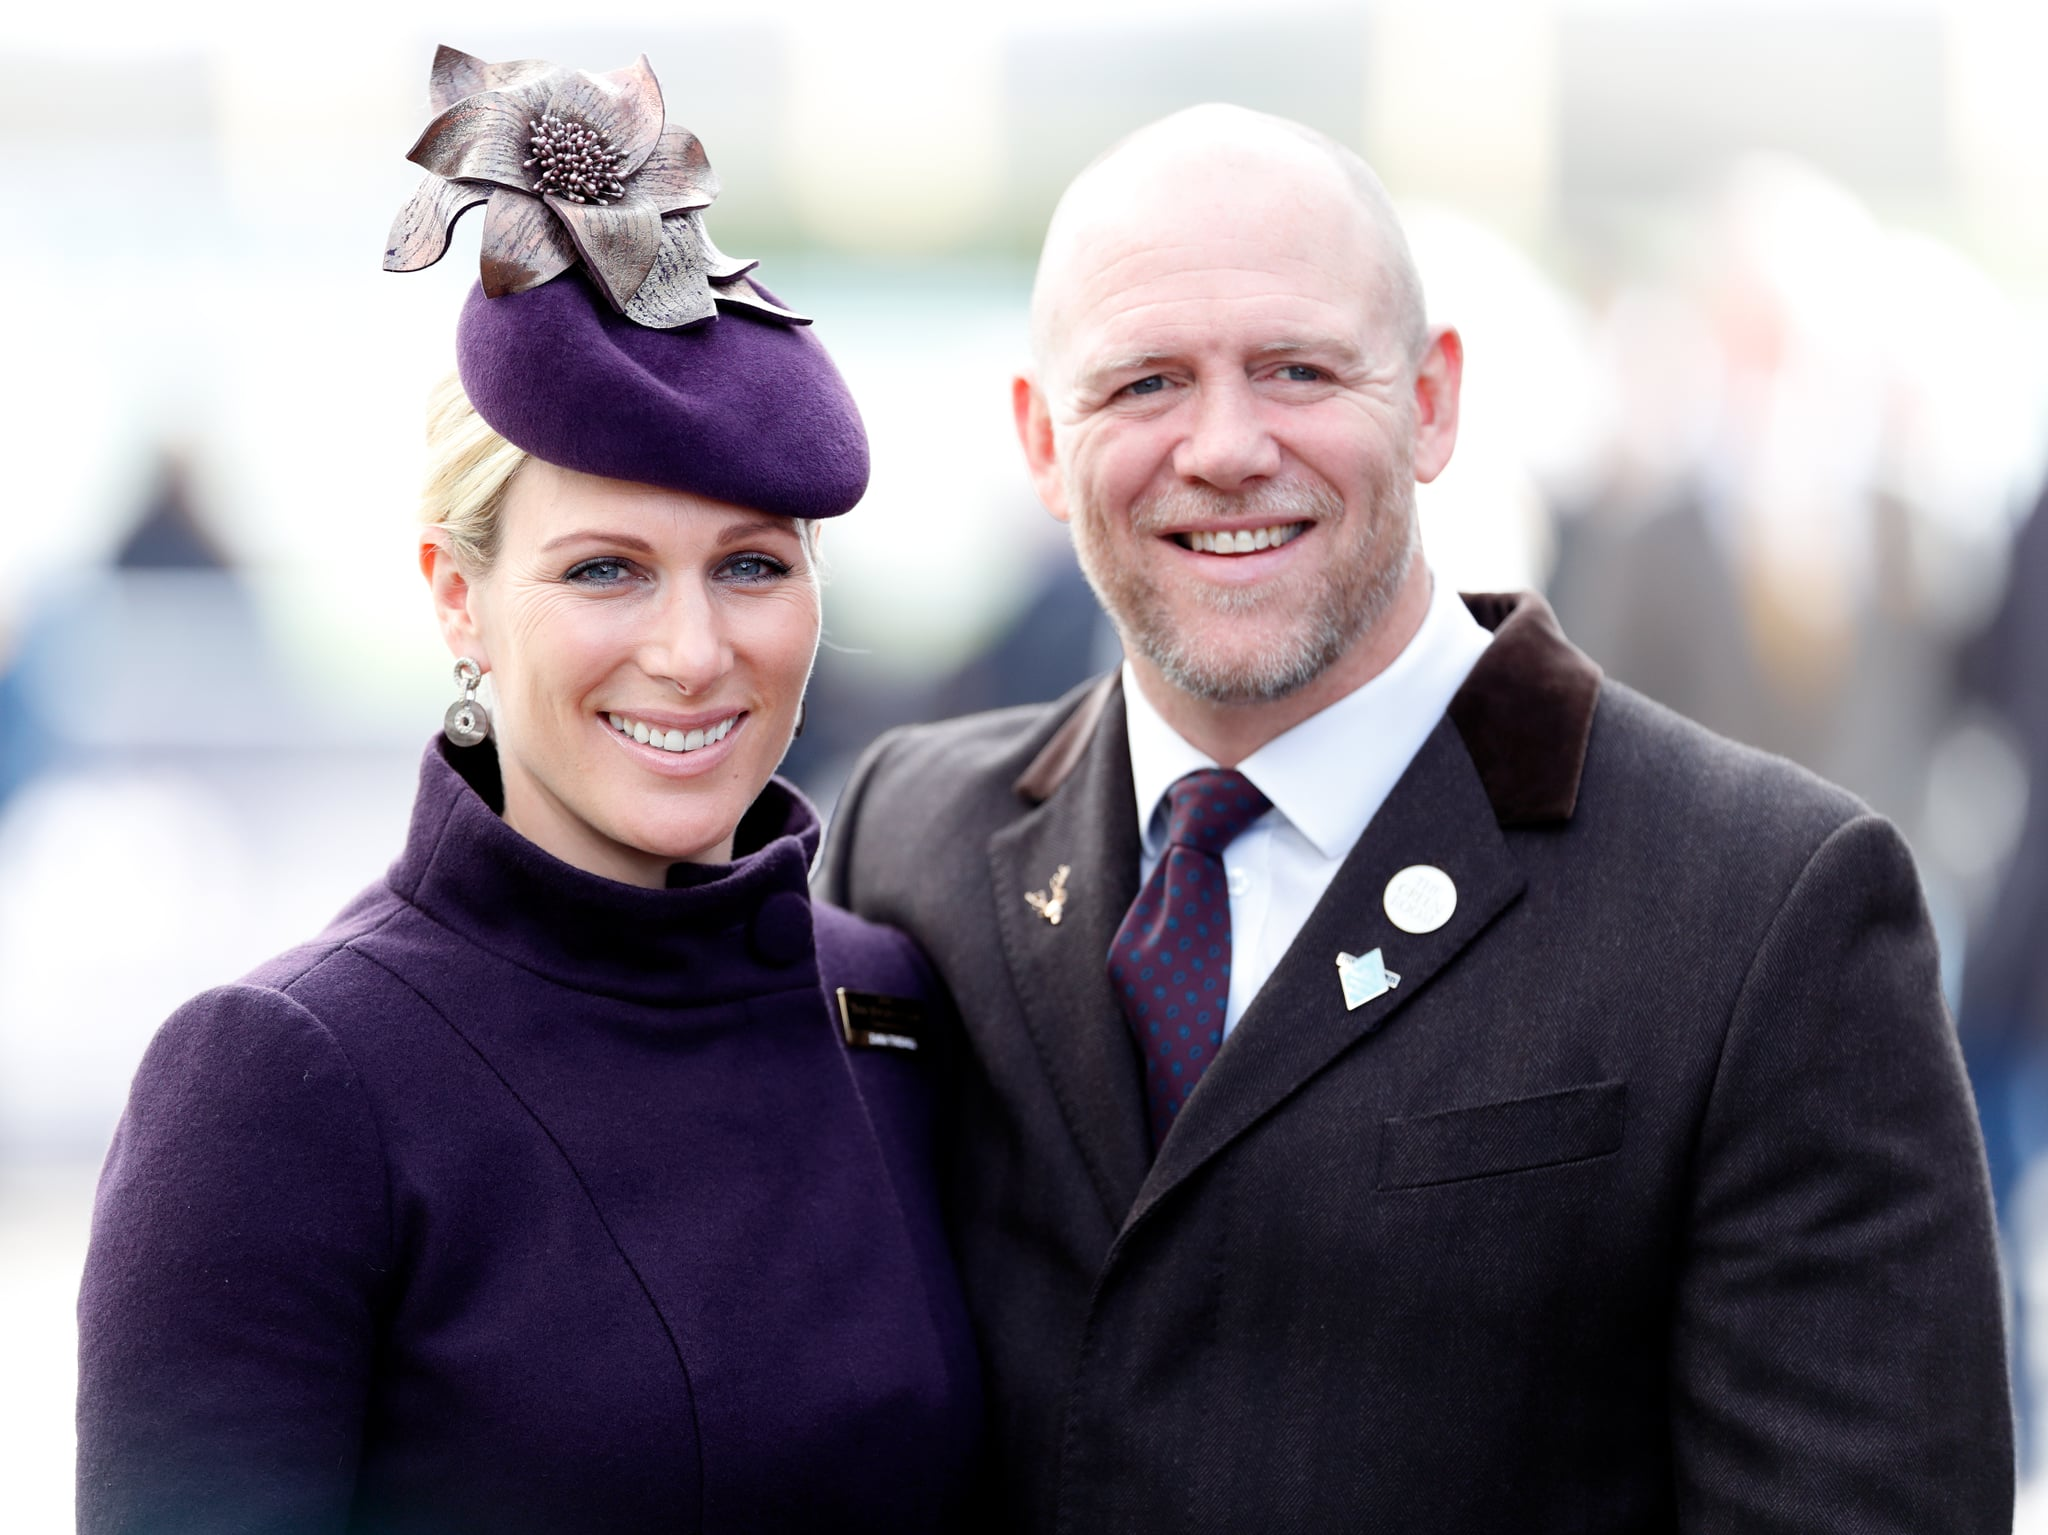 CHELTENHAM, UNITED KINGDOM - MARCH 13: (EMBARGOED FOR PUBLICATION IN UK NEWSPAPERS UNTIL 24 HOURS AFTER CREATE DATE AND TIME) Zara Tindall and Mike Tindall attend day 4 'Gold Cup Day' of the Cheltenham Festival 2020 at Cheltenham Racecourse on March 13, 2020 in Cheltenham, England. (Photo by Max Mumby/Indigo/Getty Images)